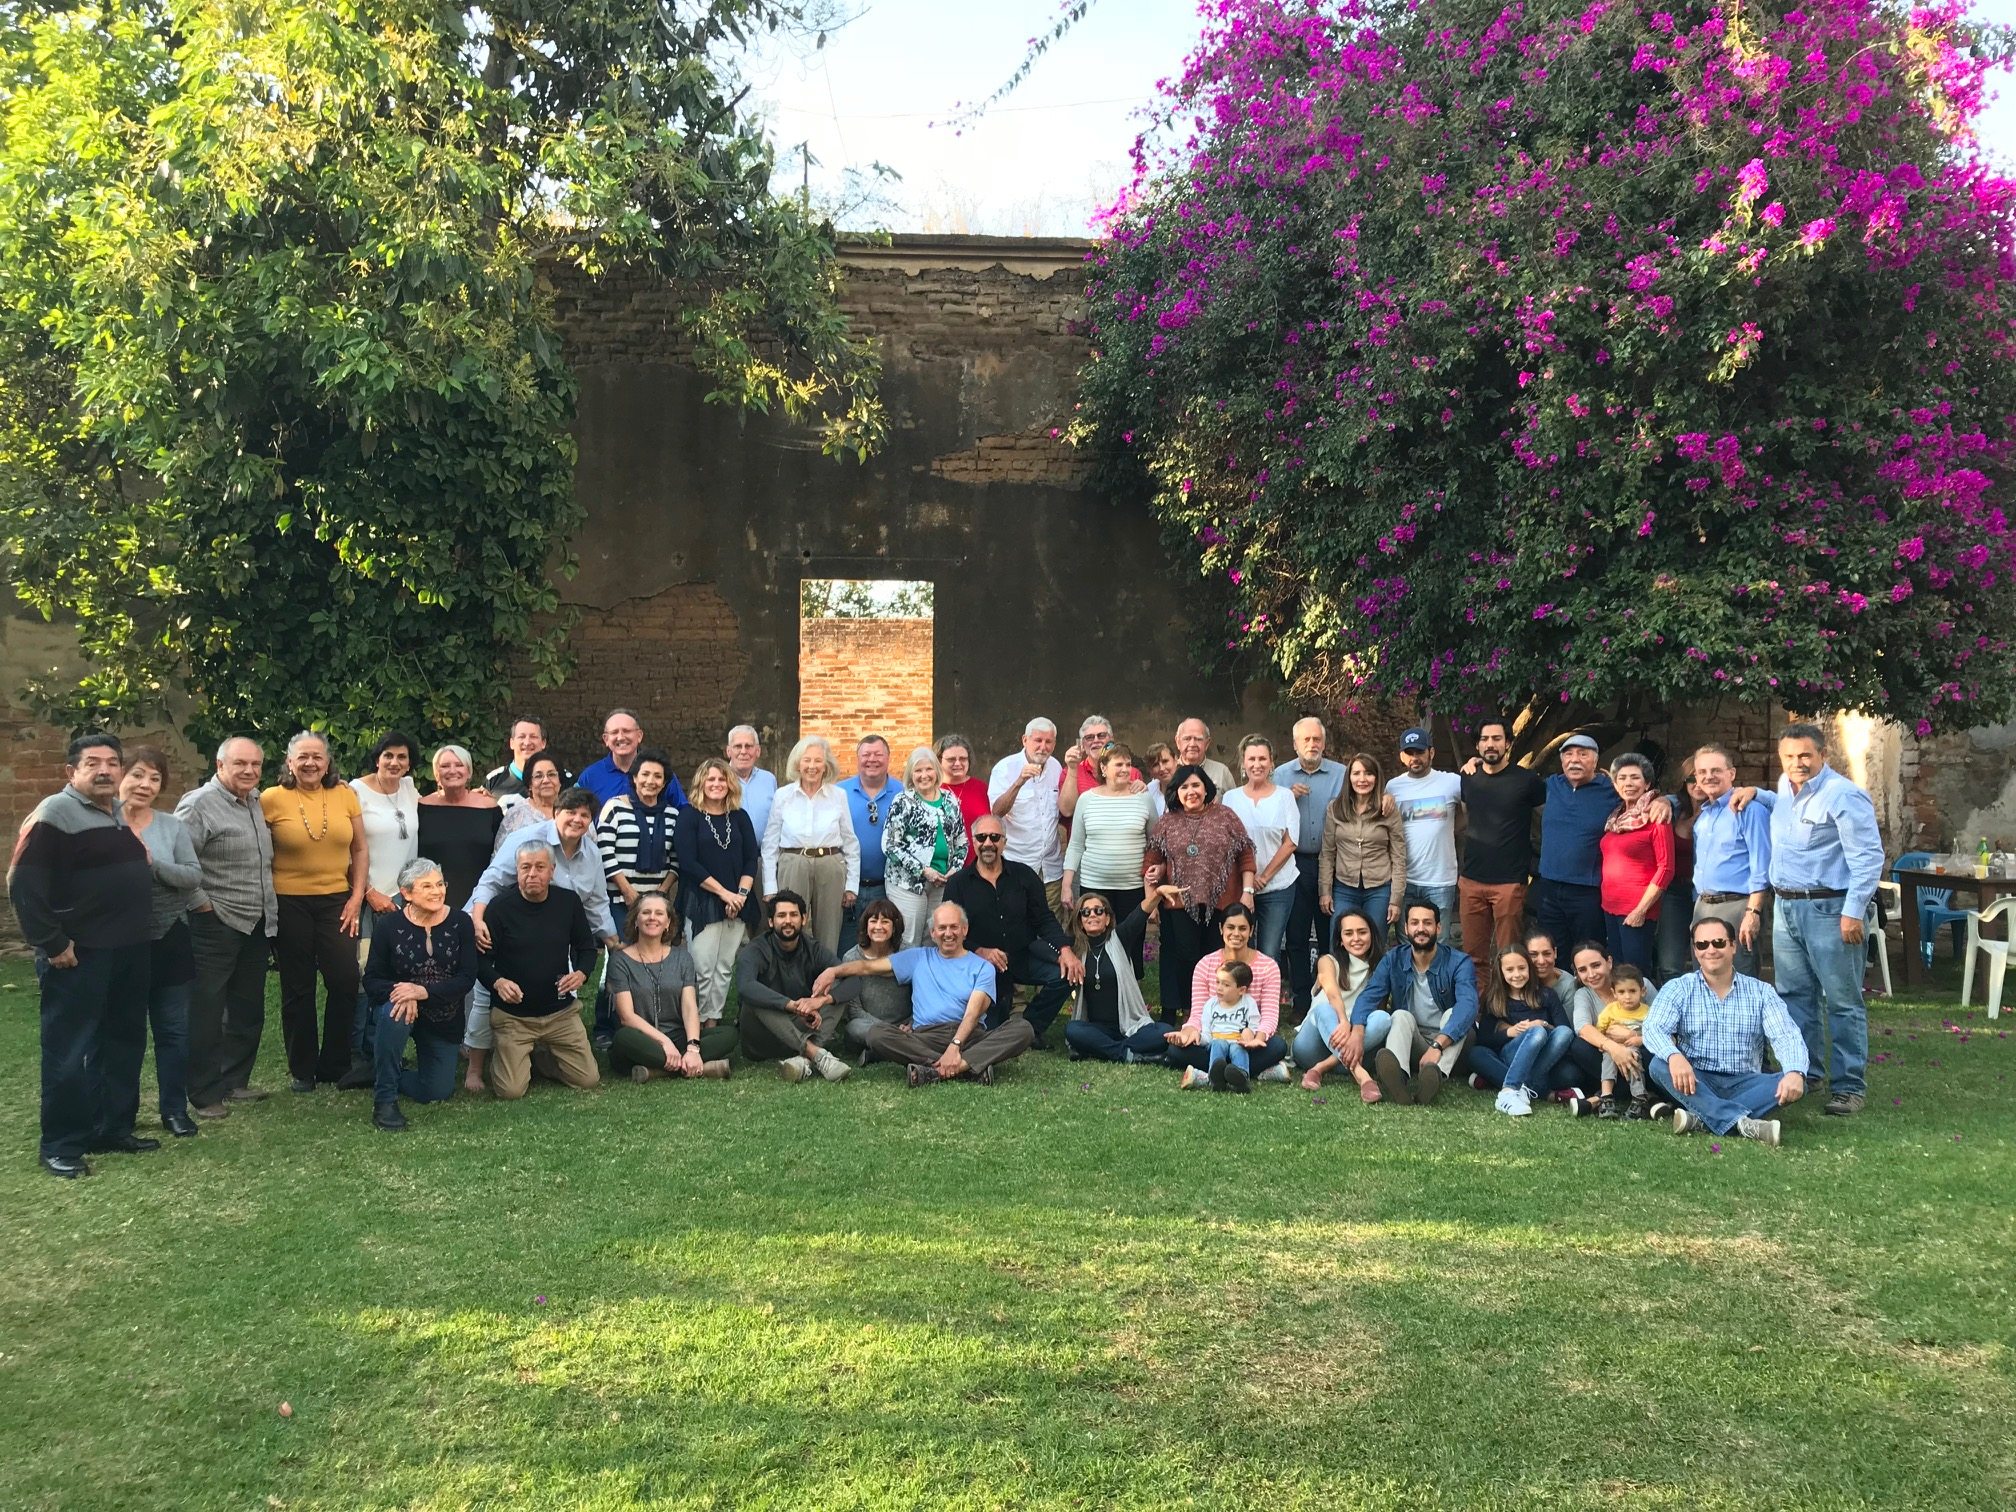 Memories and friendships made on recent trips to Tlaquepaque